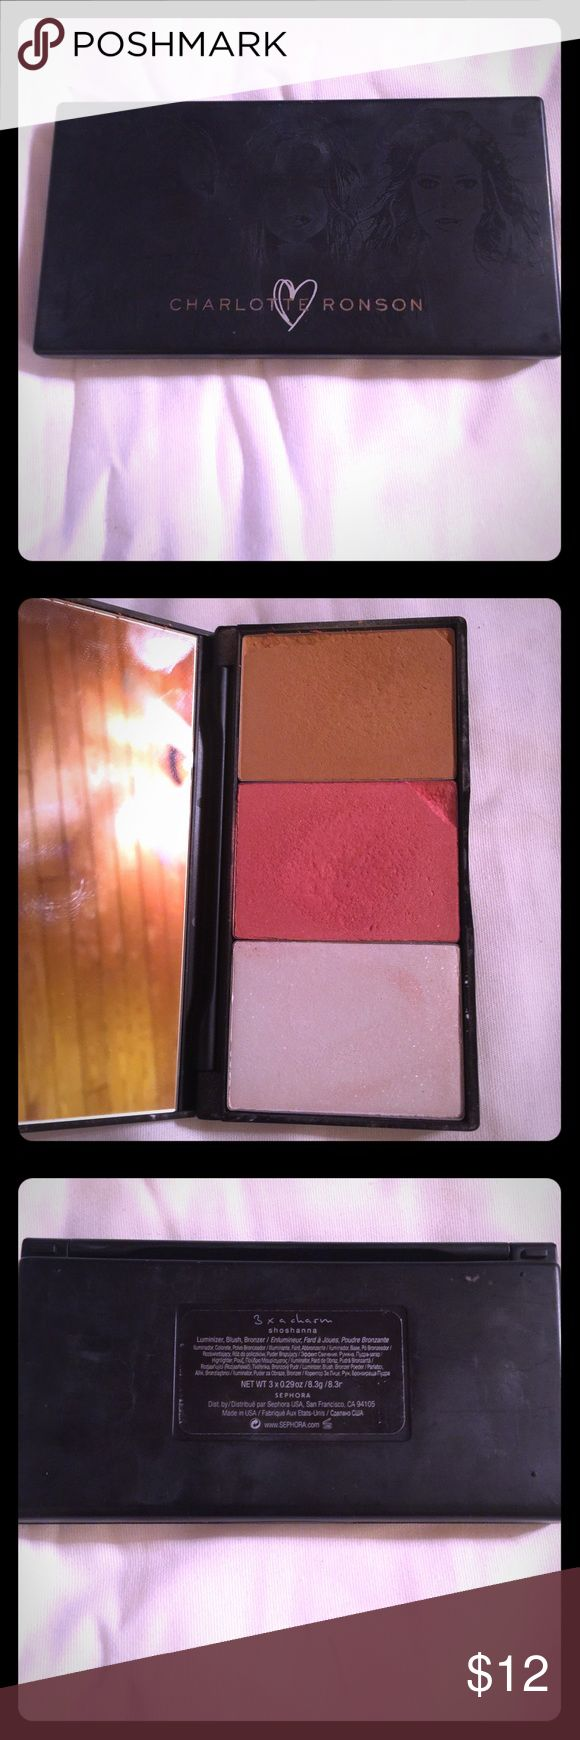 Charlotte Ronson 3x a charm blush/bronze/highlight Blush/Bronzer/highlight palette by Charlotte Ronson. Discontinued at Sephora. This has not been used hardly at all but was in my makeup case so got slightly beat up. Still plenty of life left in it. See photo. It has been sanitized and is ready to go. No trades. Reasonable offers welcome. Charlotte Ronson Makeup Blush